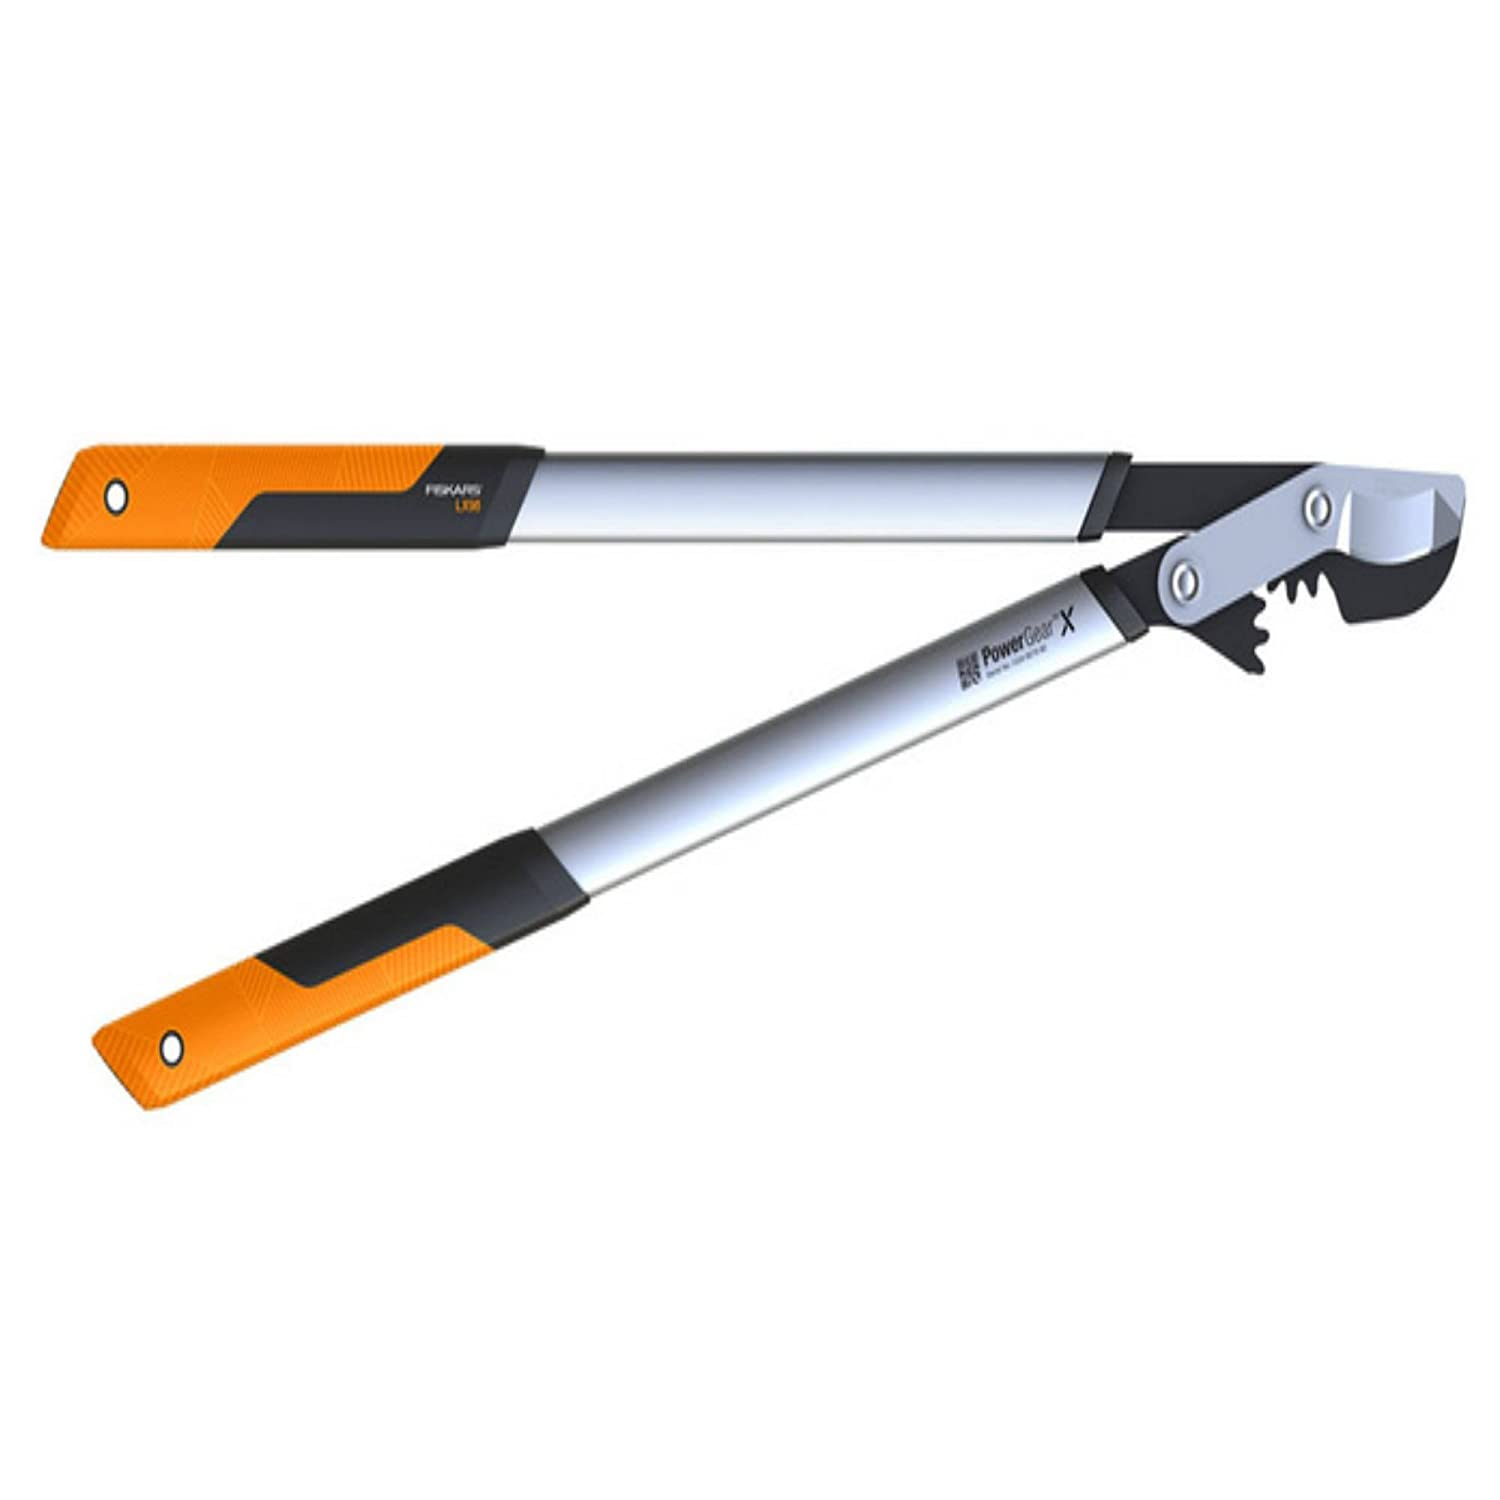 Fiskars PowerGear X Lopper Anvil L LX99, Size L, Cutting diameter: 5.5 cm, Non-stick coating, Hardened steel, Length: 80 cm, Black/Orange, 1020189